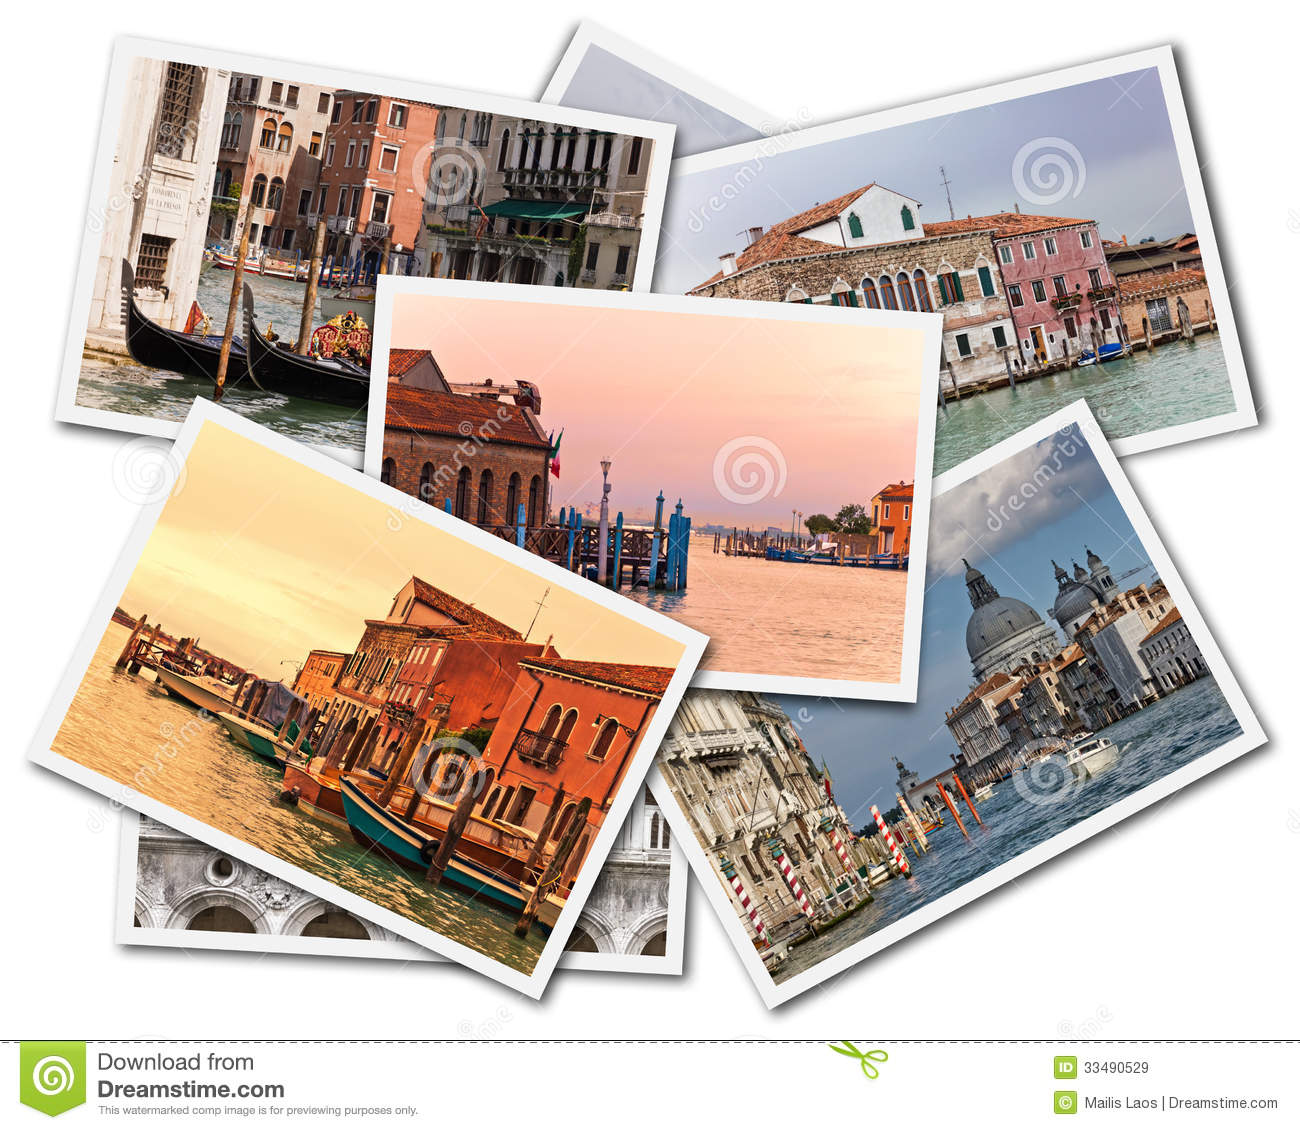 Download Venice Collage stock image. Image of italy, houses, cards - 33490529